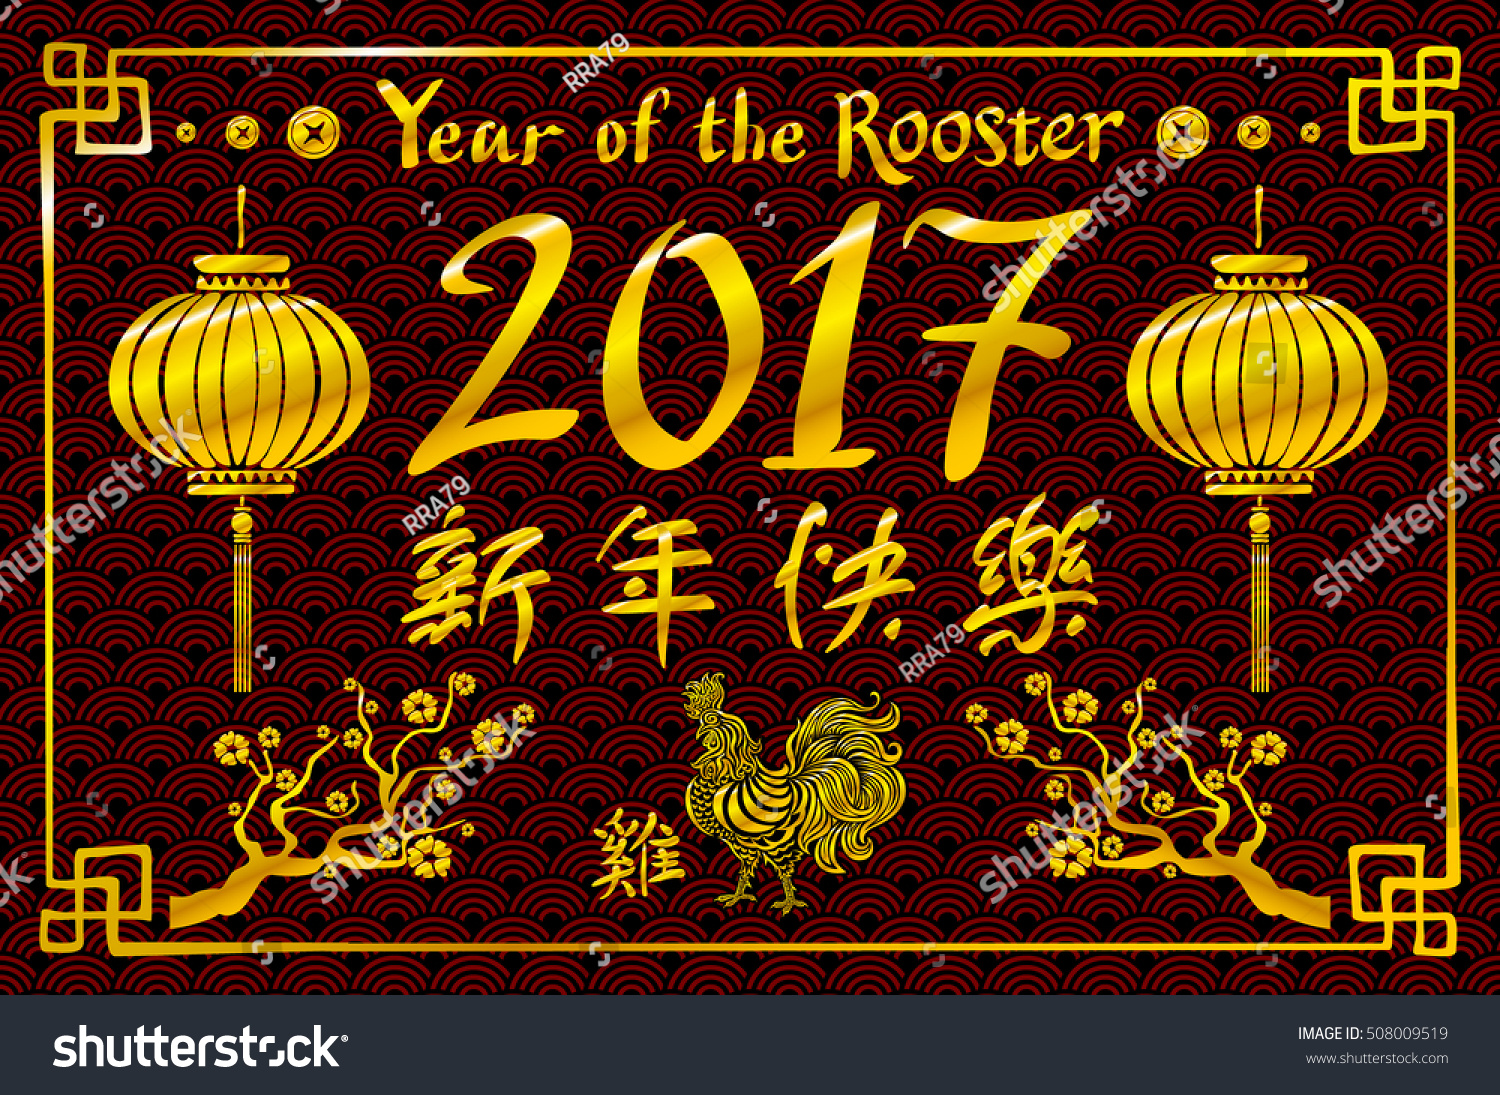 Gold 2017 new year chinese symbol stock vector 508009519 shutterstock gold 2017 new year with chinese symbol of rooster dragon fish scales background art buycottarizona Gallery